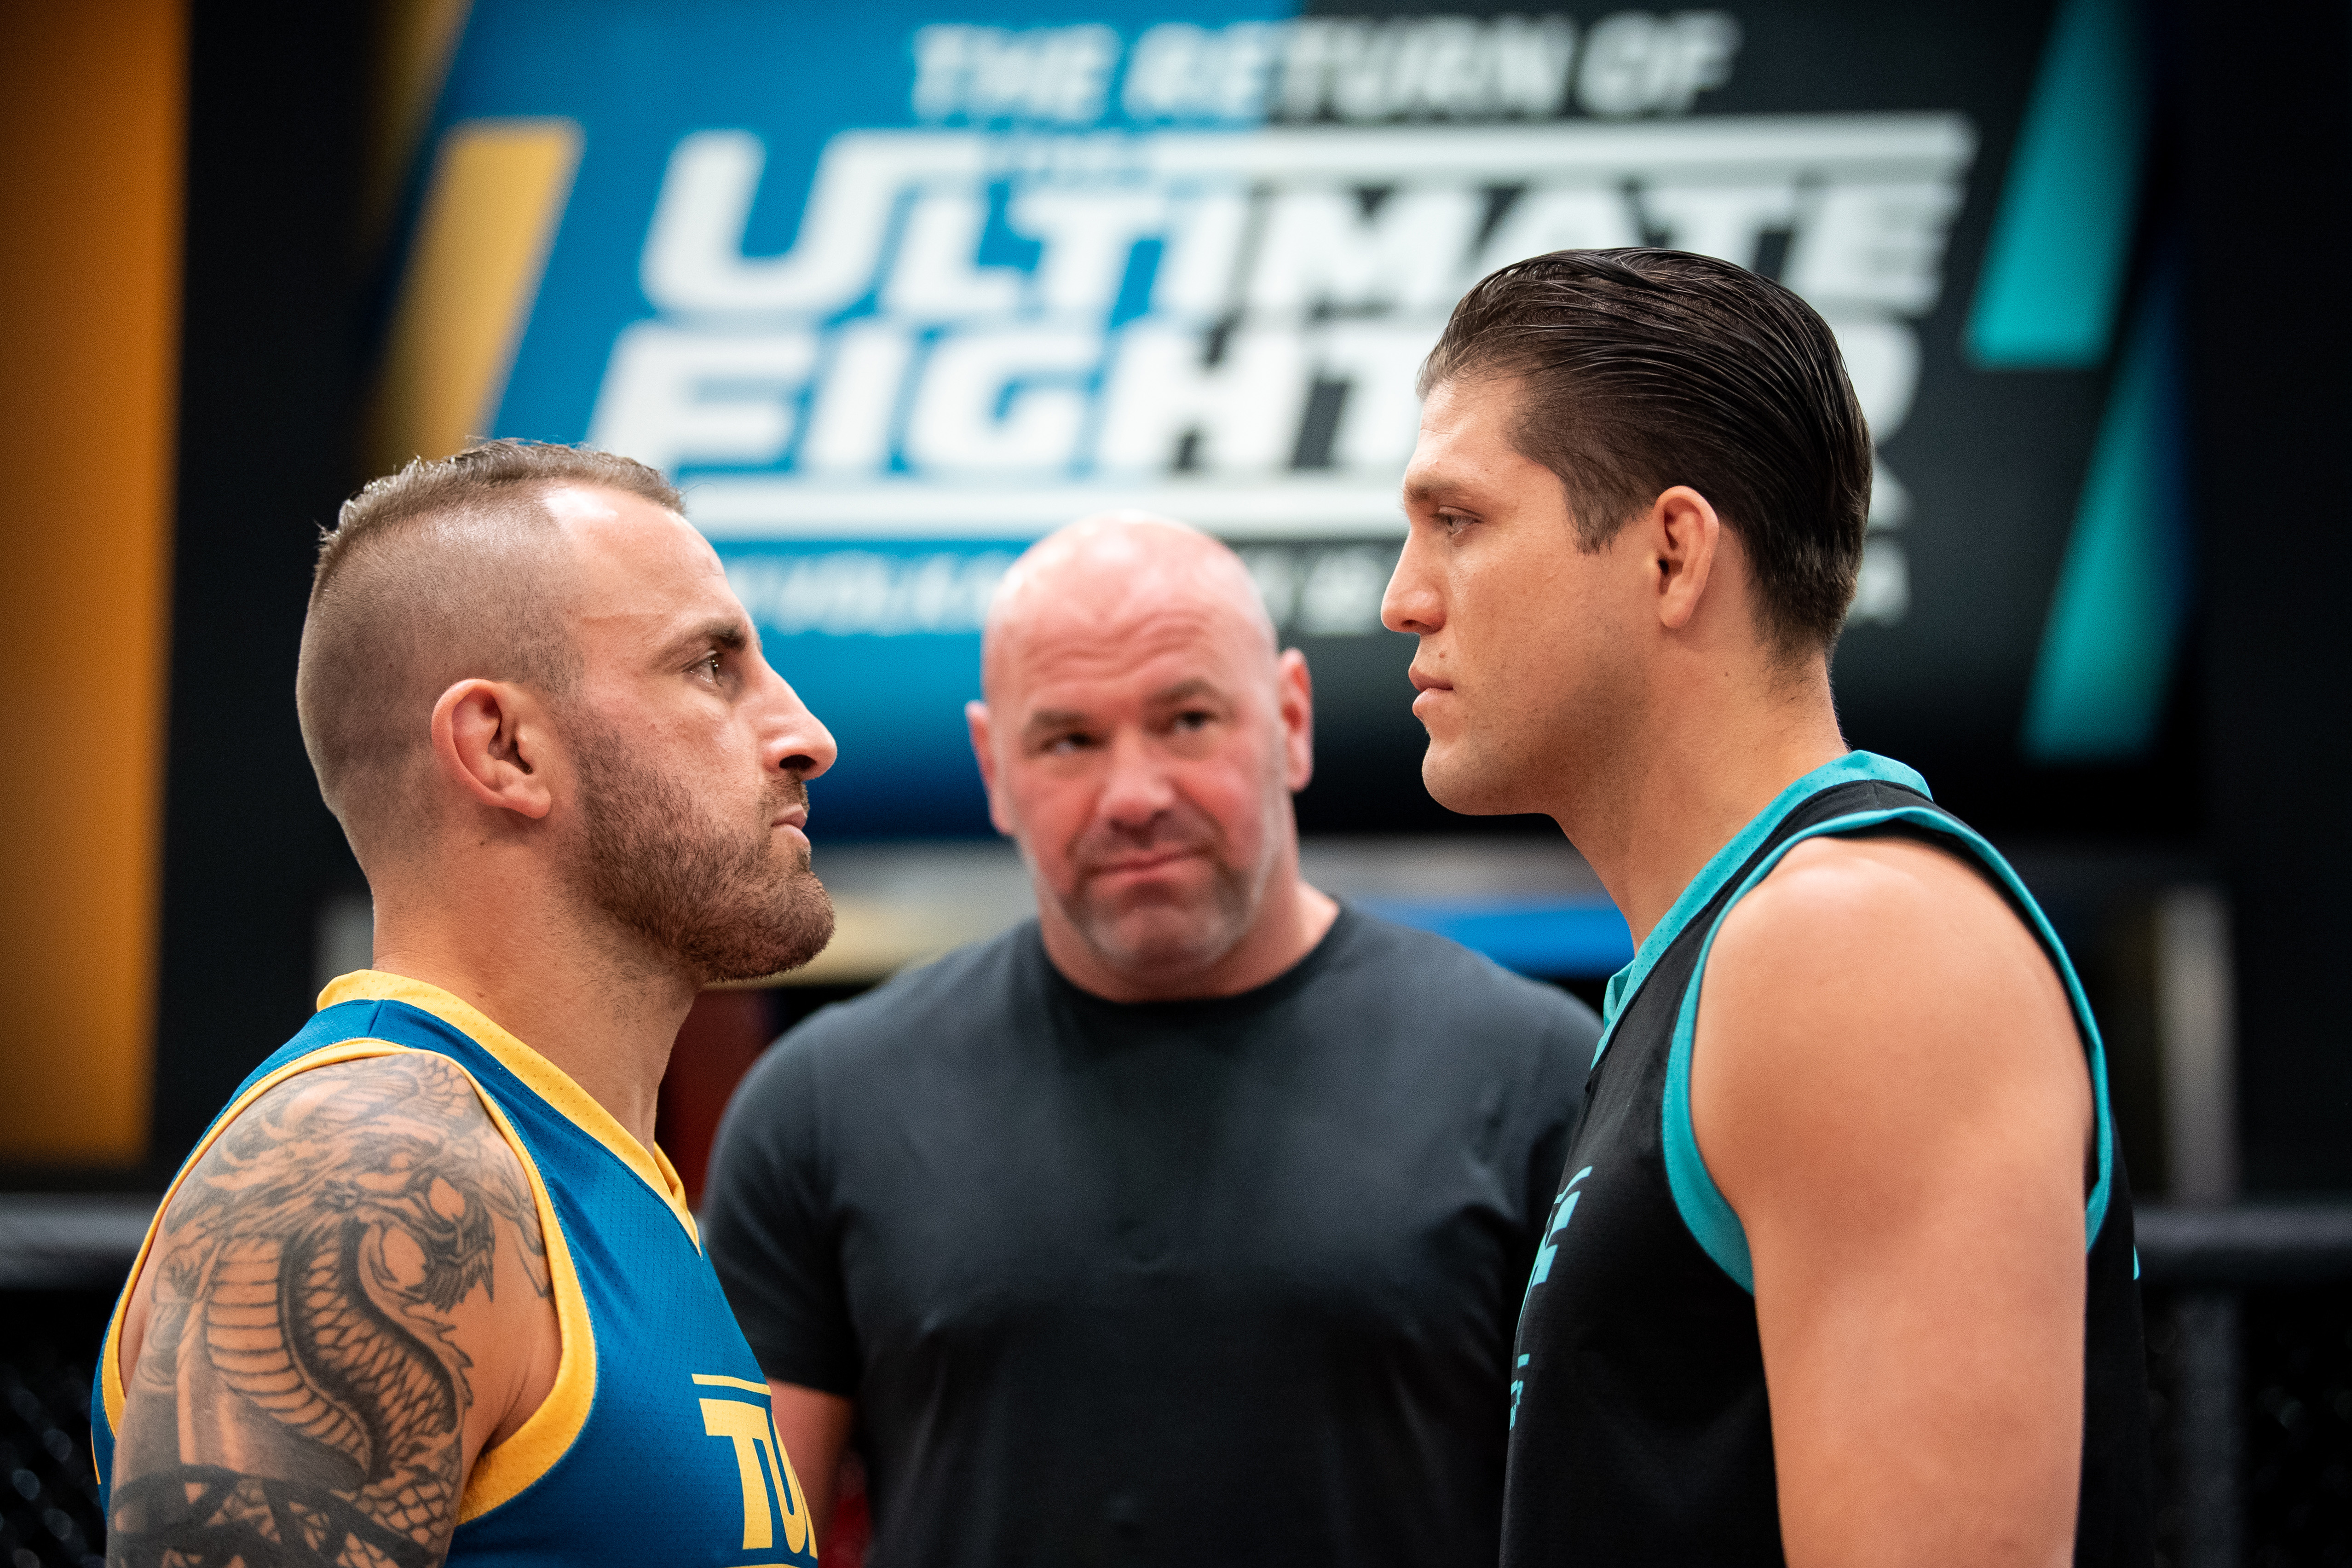 Alexander Volkanovski and Brian Ortega face off during the filming of The Return of The Ultimate Fighter at UFC APEX on May 20, 2021 in Las Vegas, Nevada.